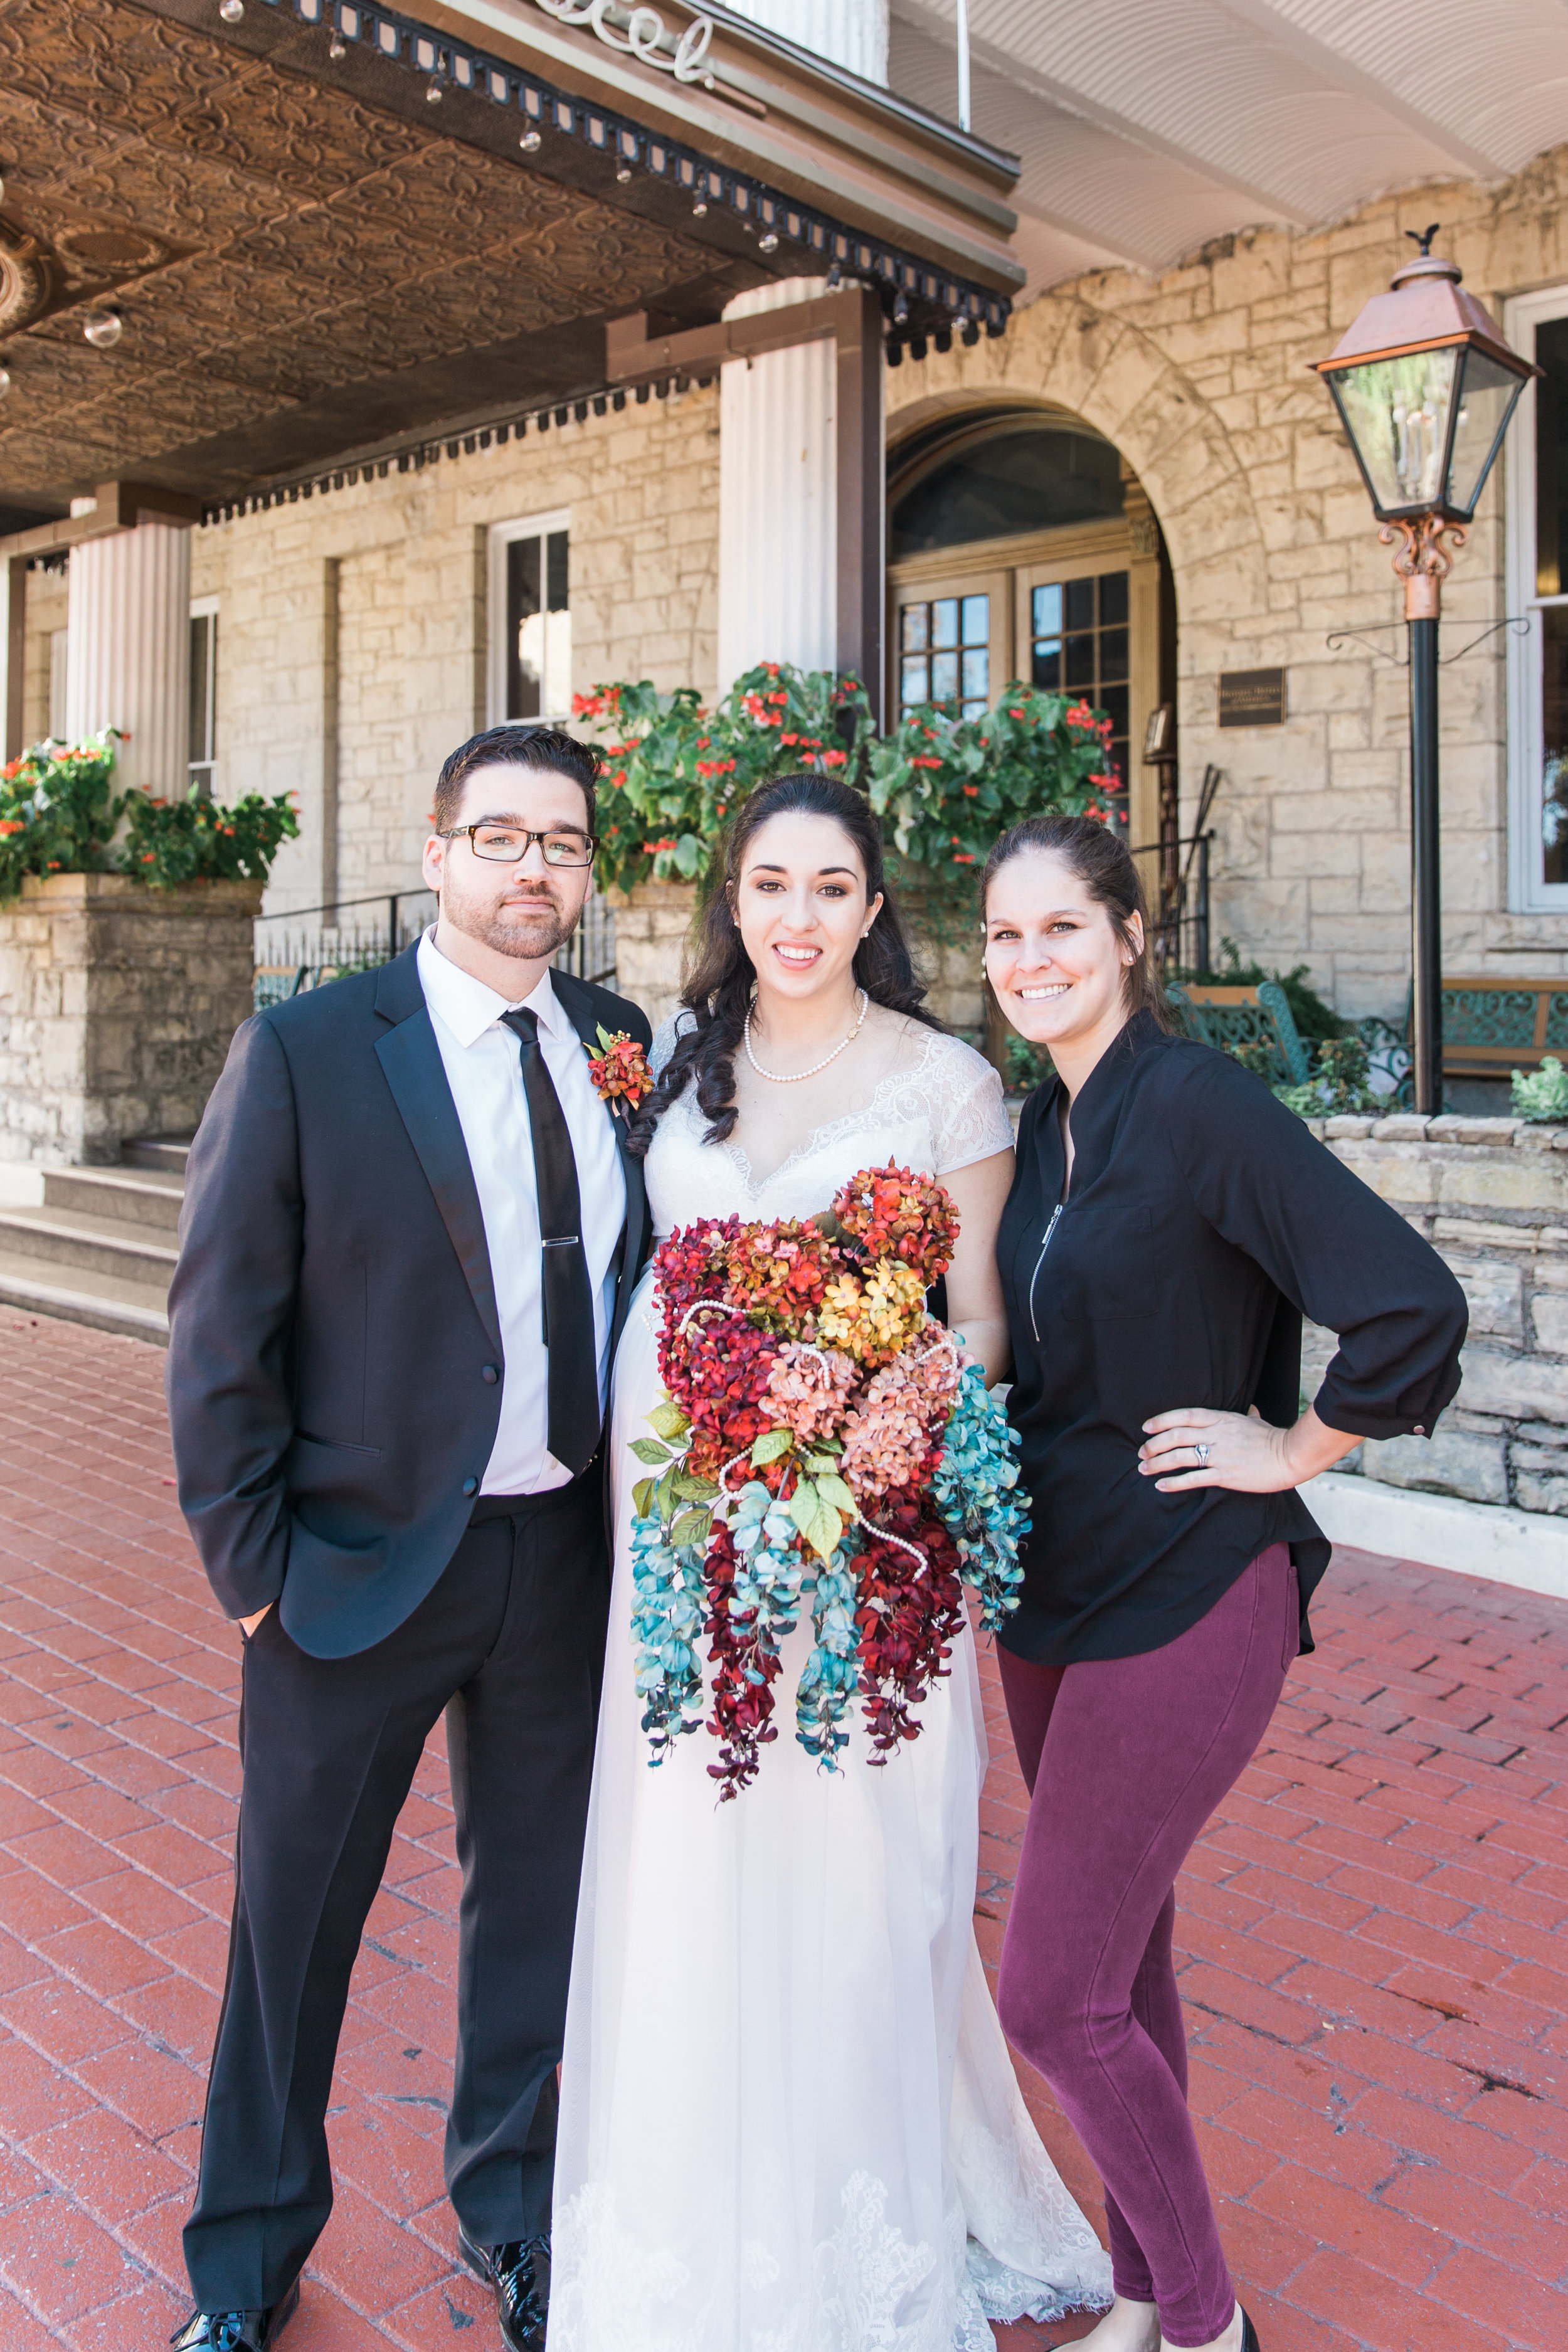 Hecksher Wedding 11-14-16-1421.jpg